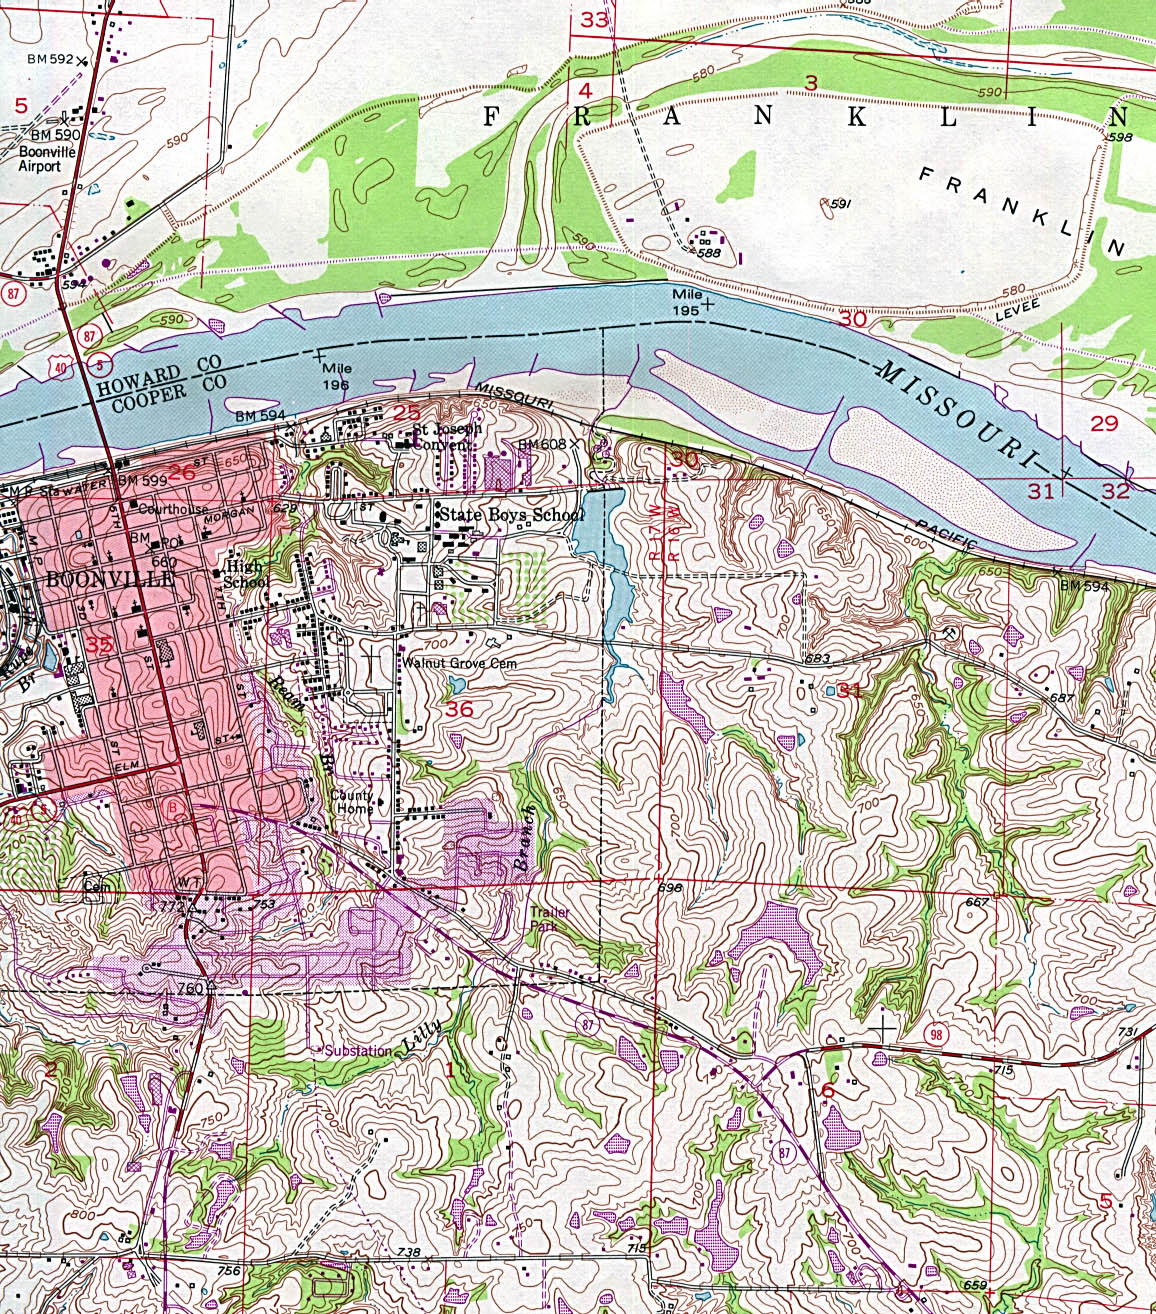 Boonville Topographic City Map, Missouri, United States